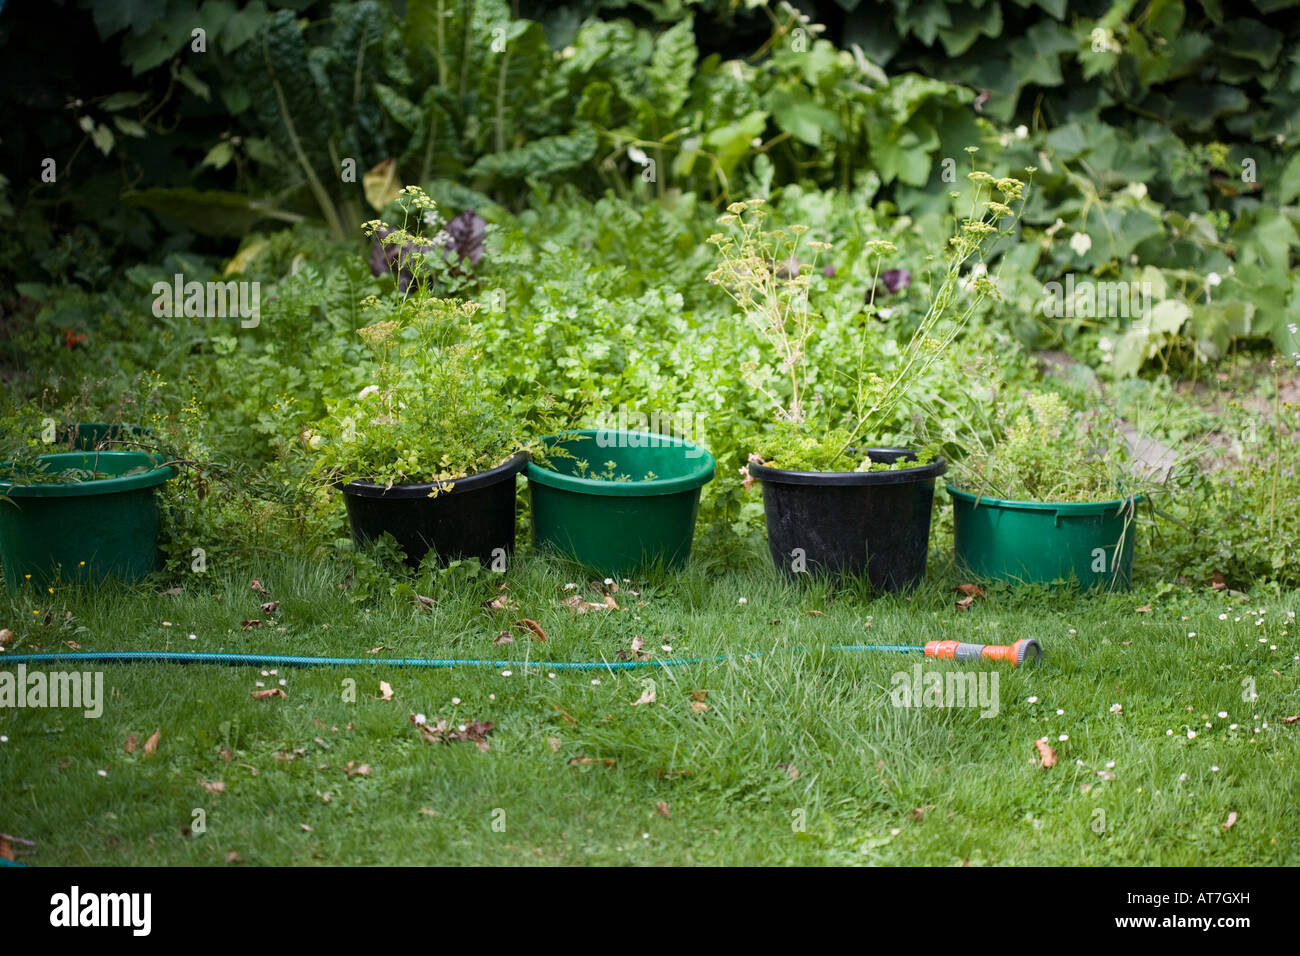 Hosepipe and plant pots - Stock Image